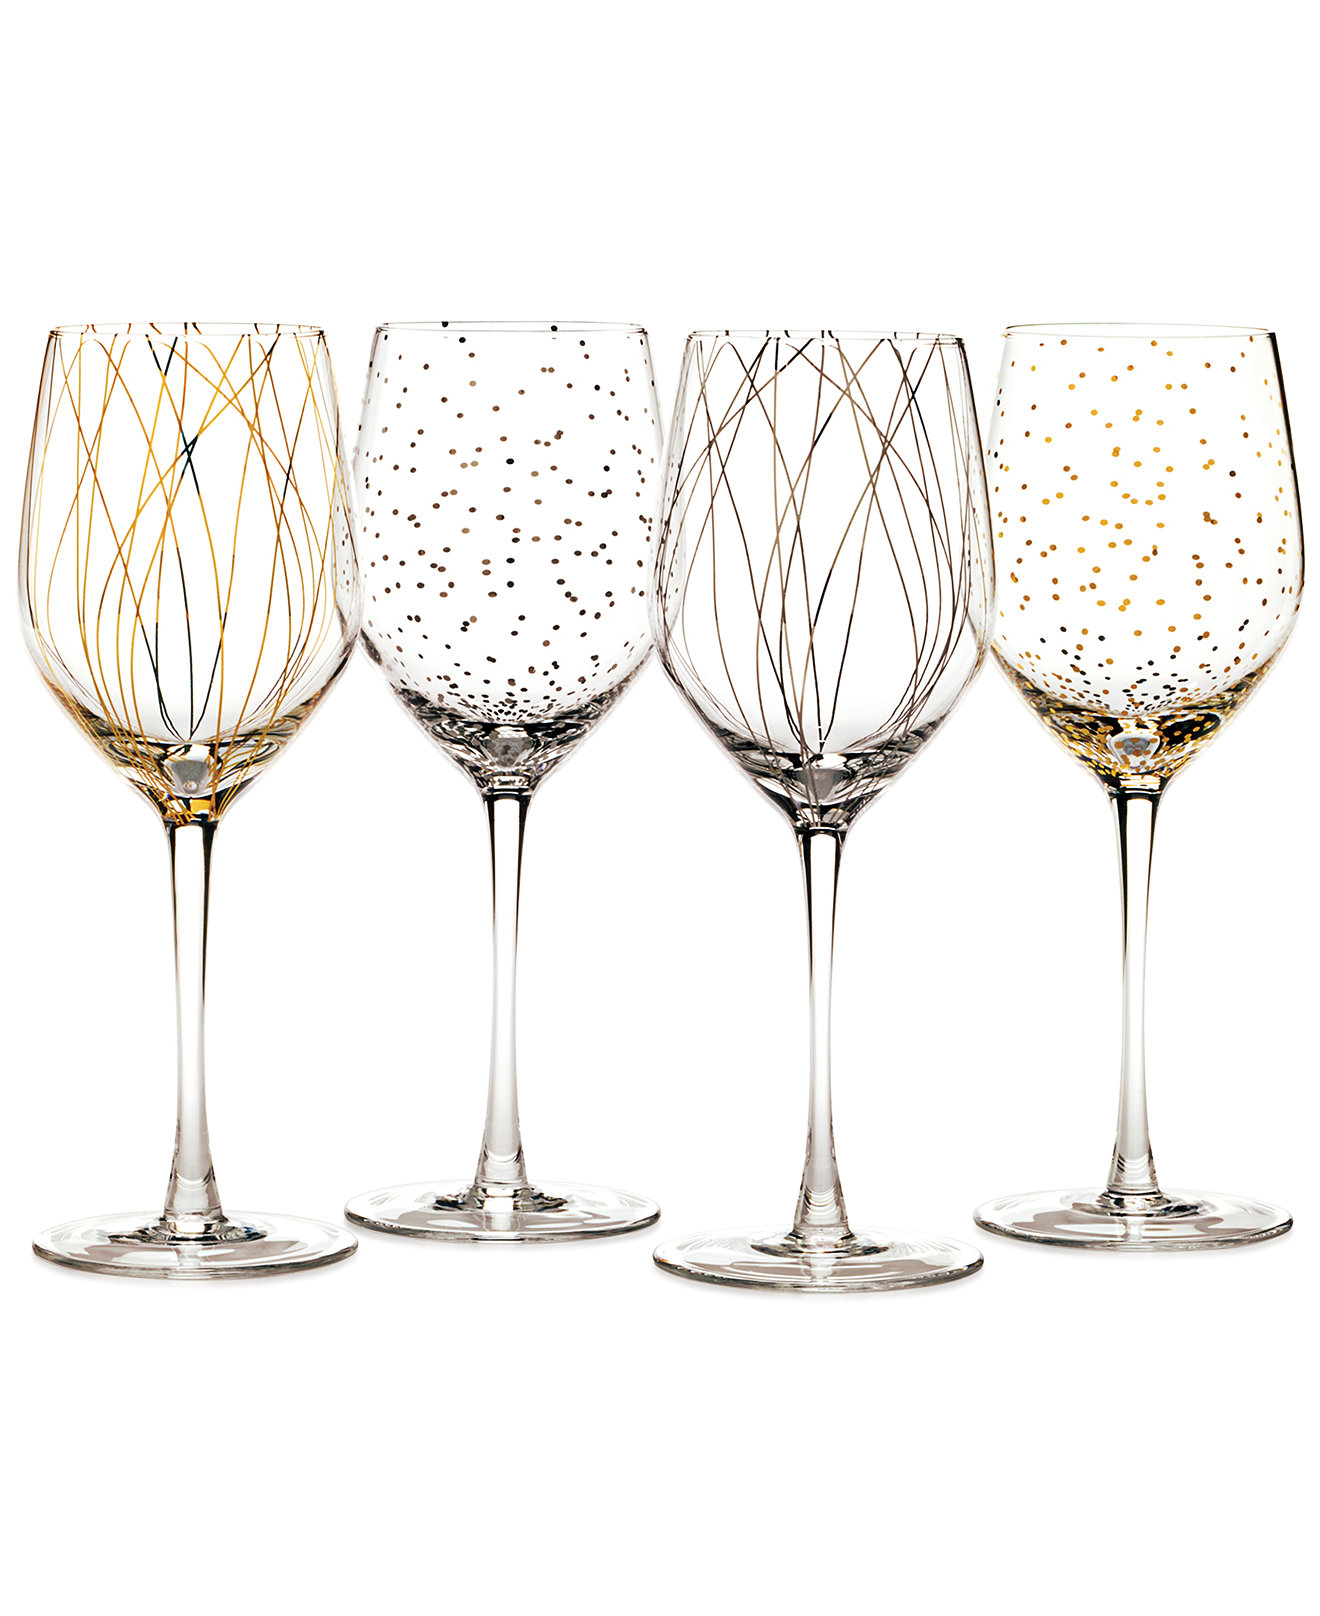 Mesmerizing Mikasa Wine Glasses 4 Pieces